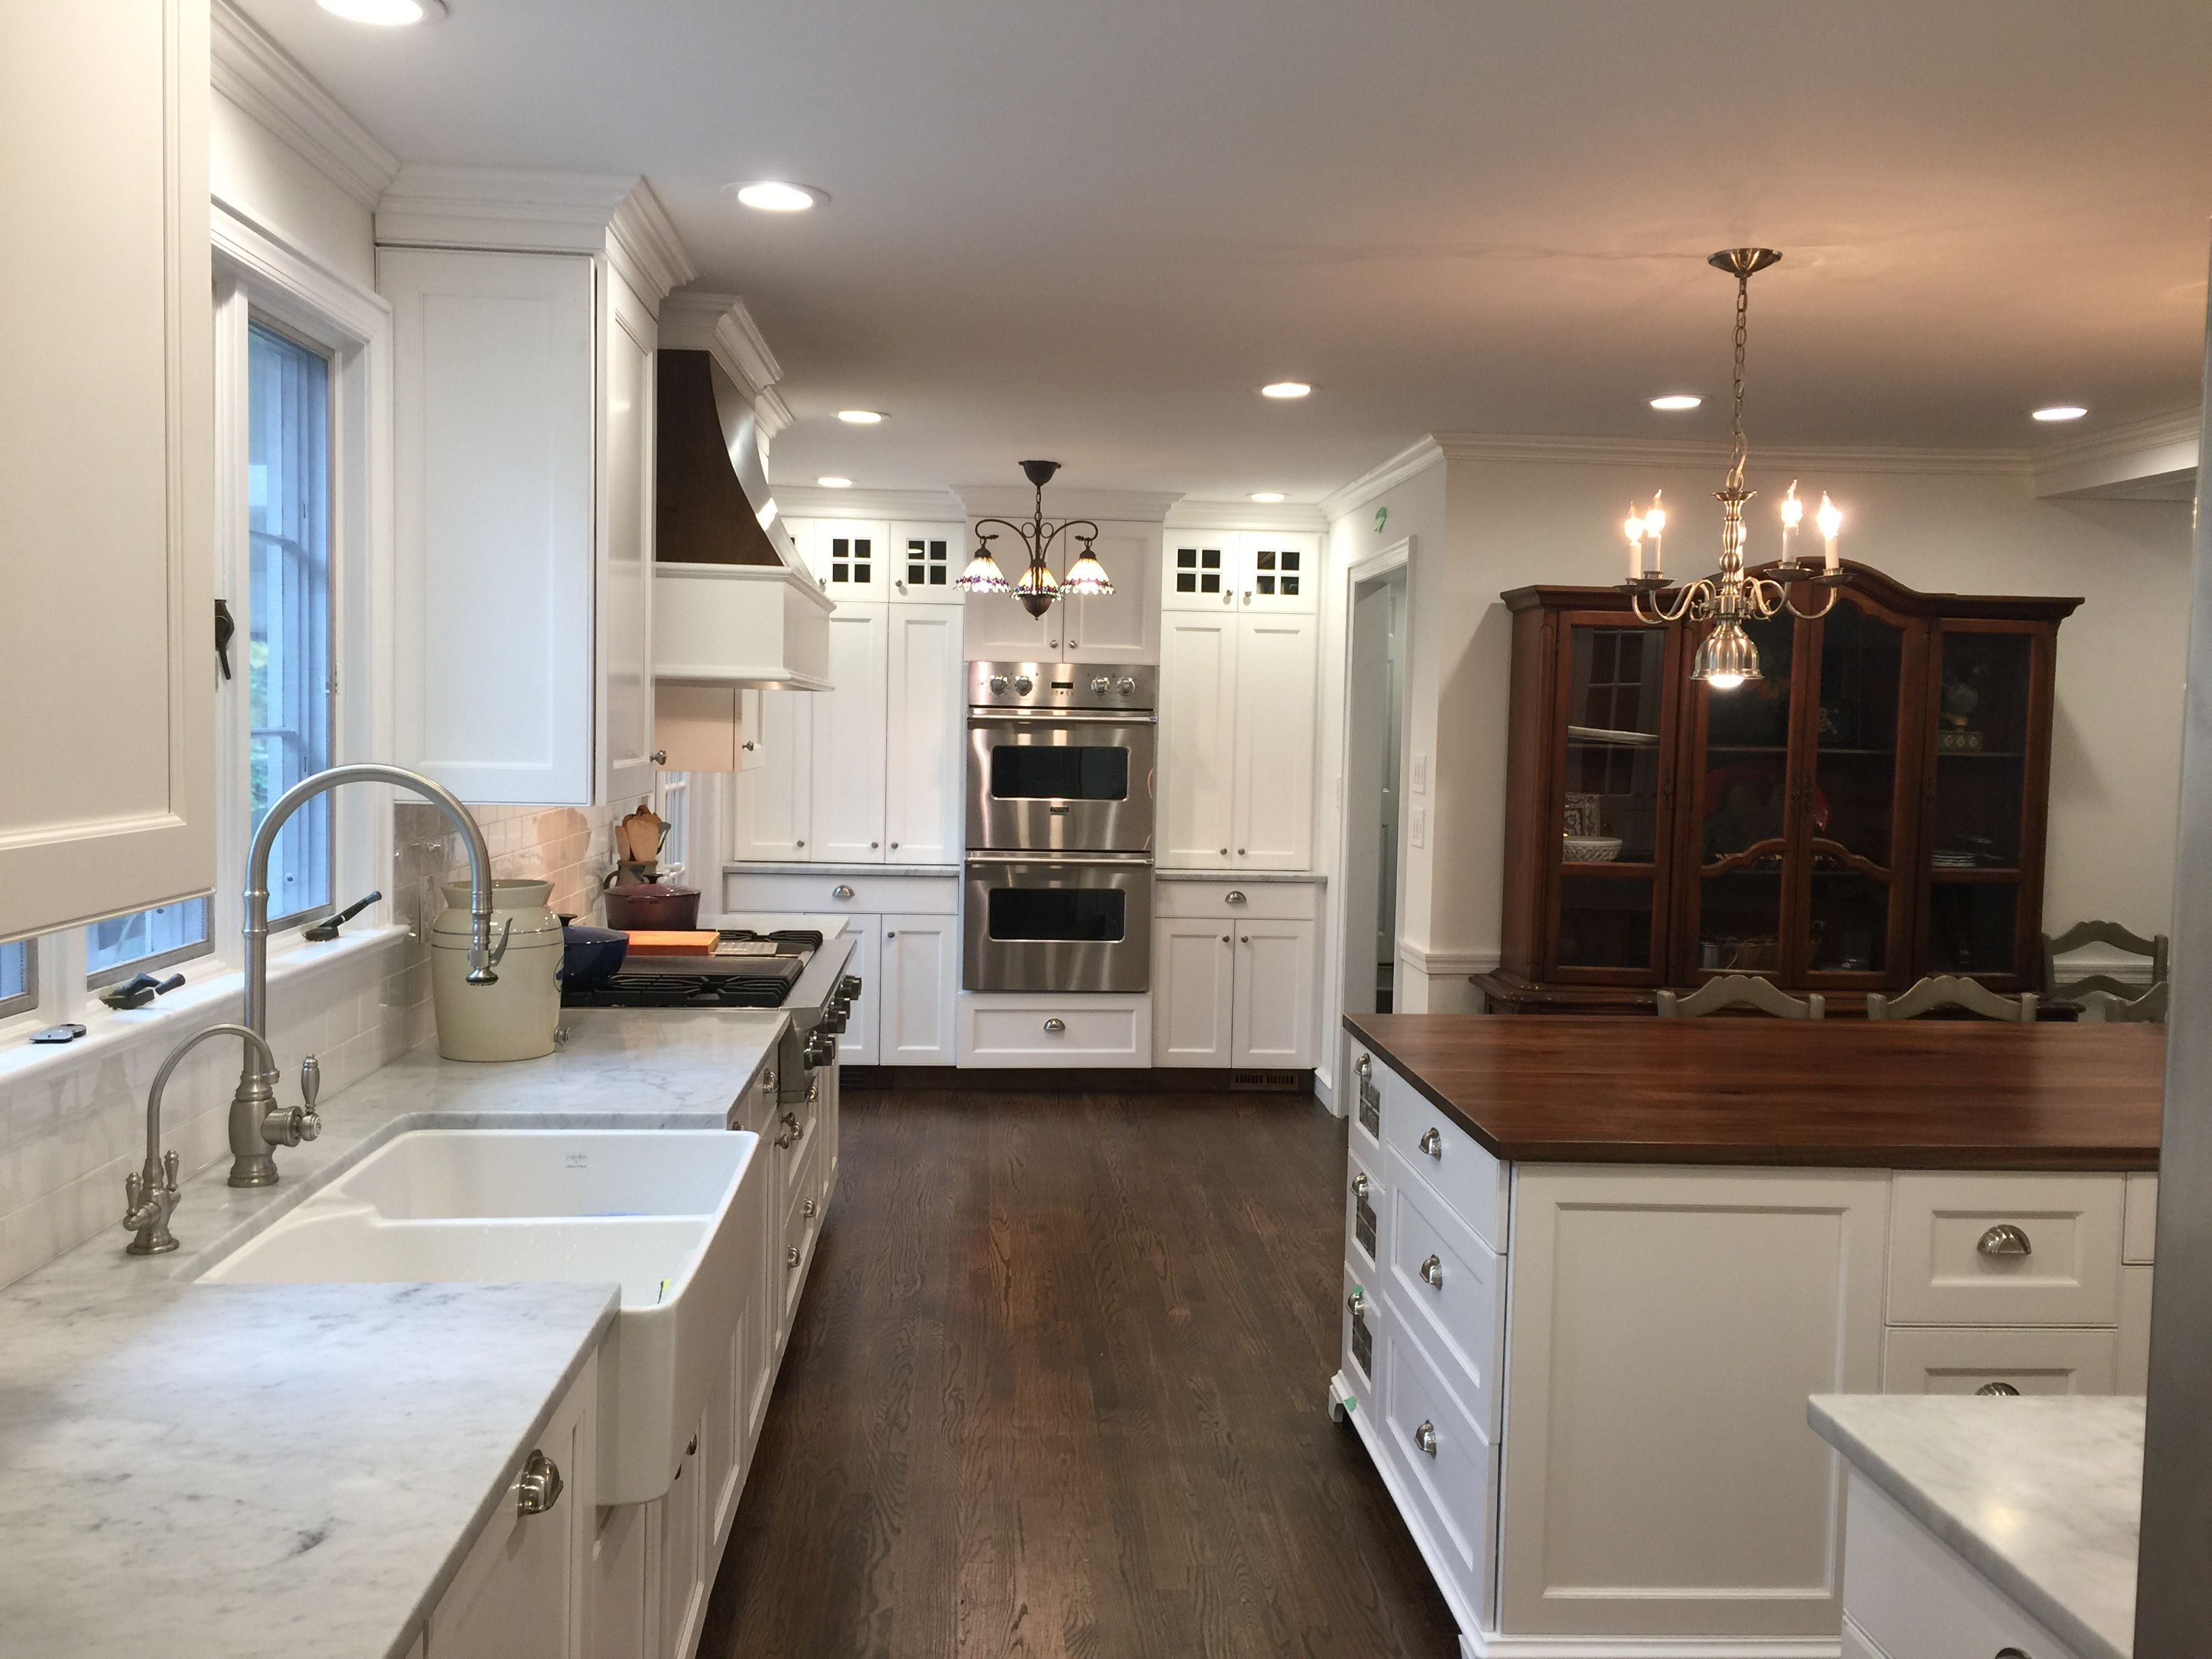 Historic Kitchen With Carrara Marble Perimeter Countertops